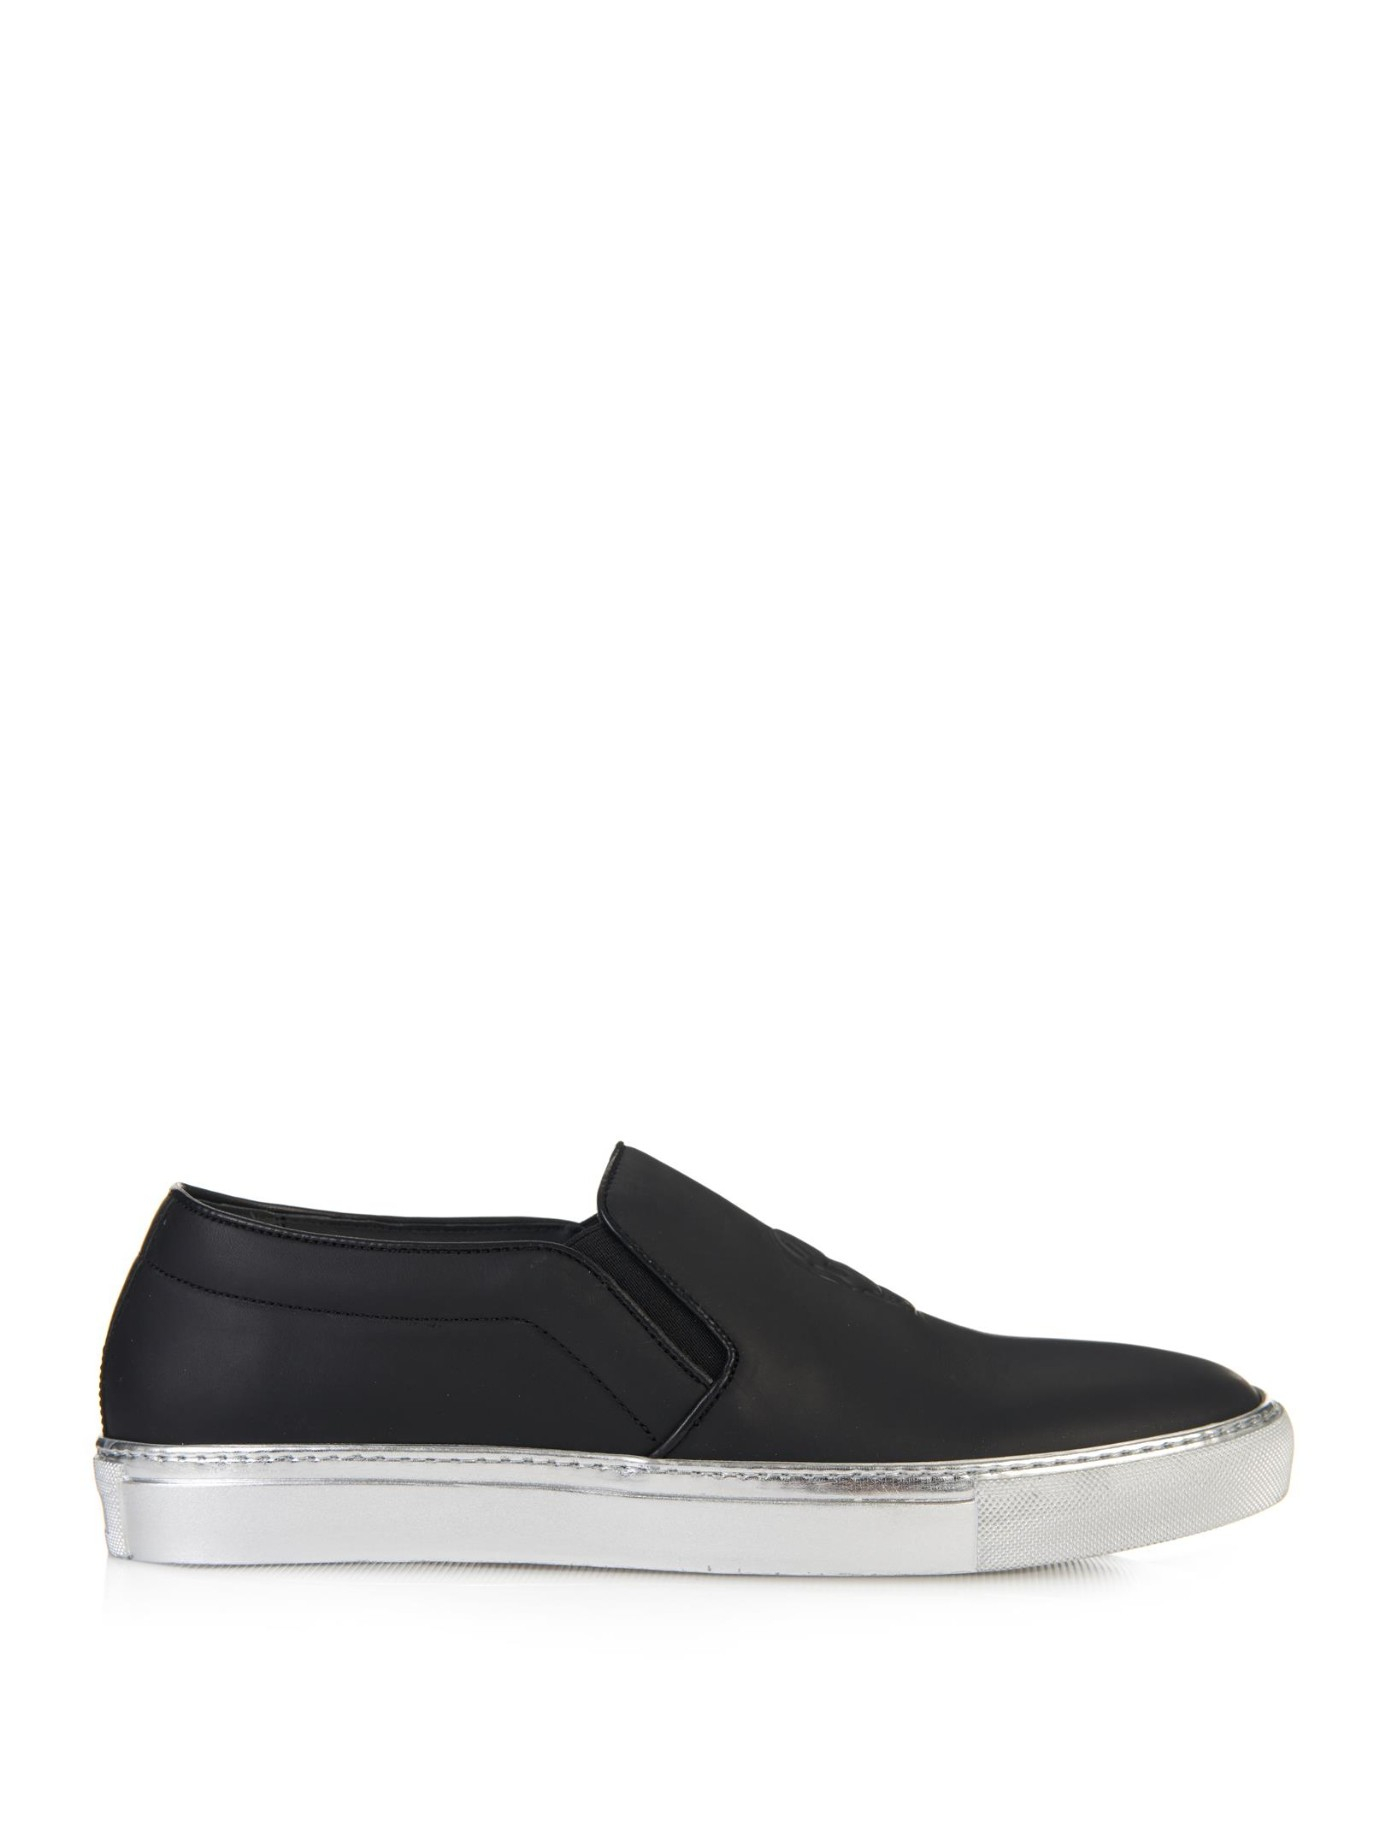 Alexander mcqueen skull embossed leather slip on trainers in black for